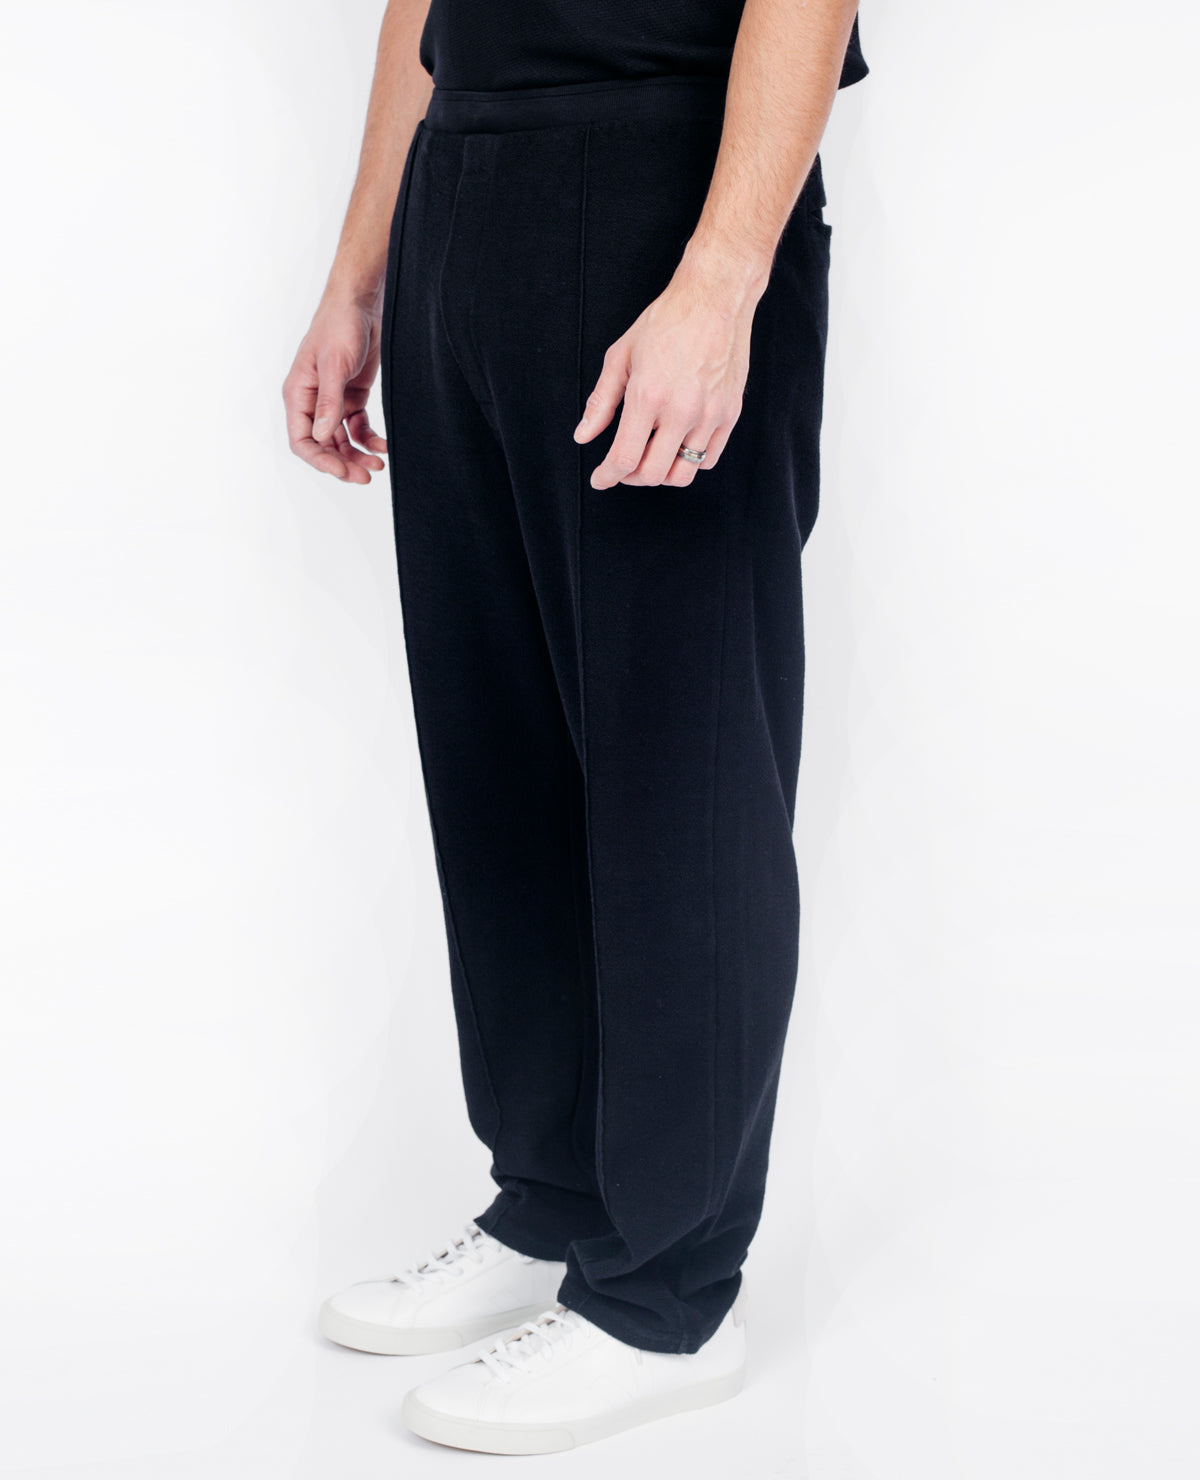 LES BASICS Long Pant / Black